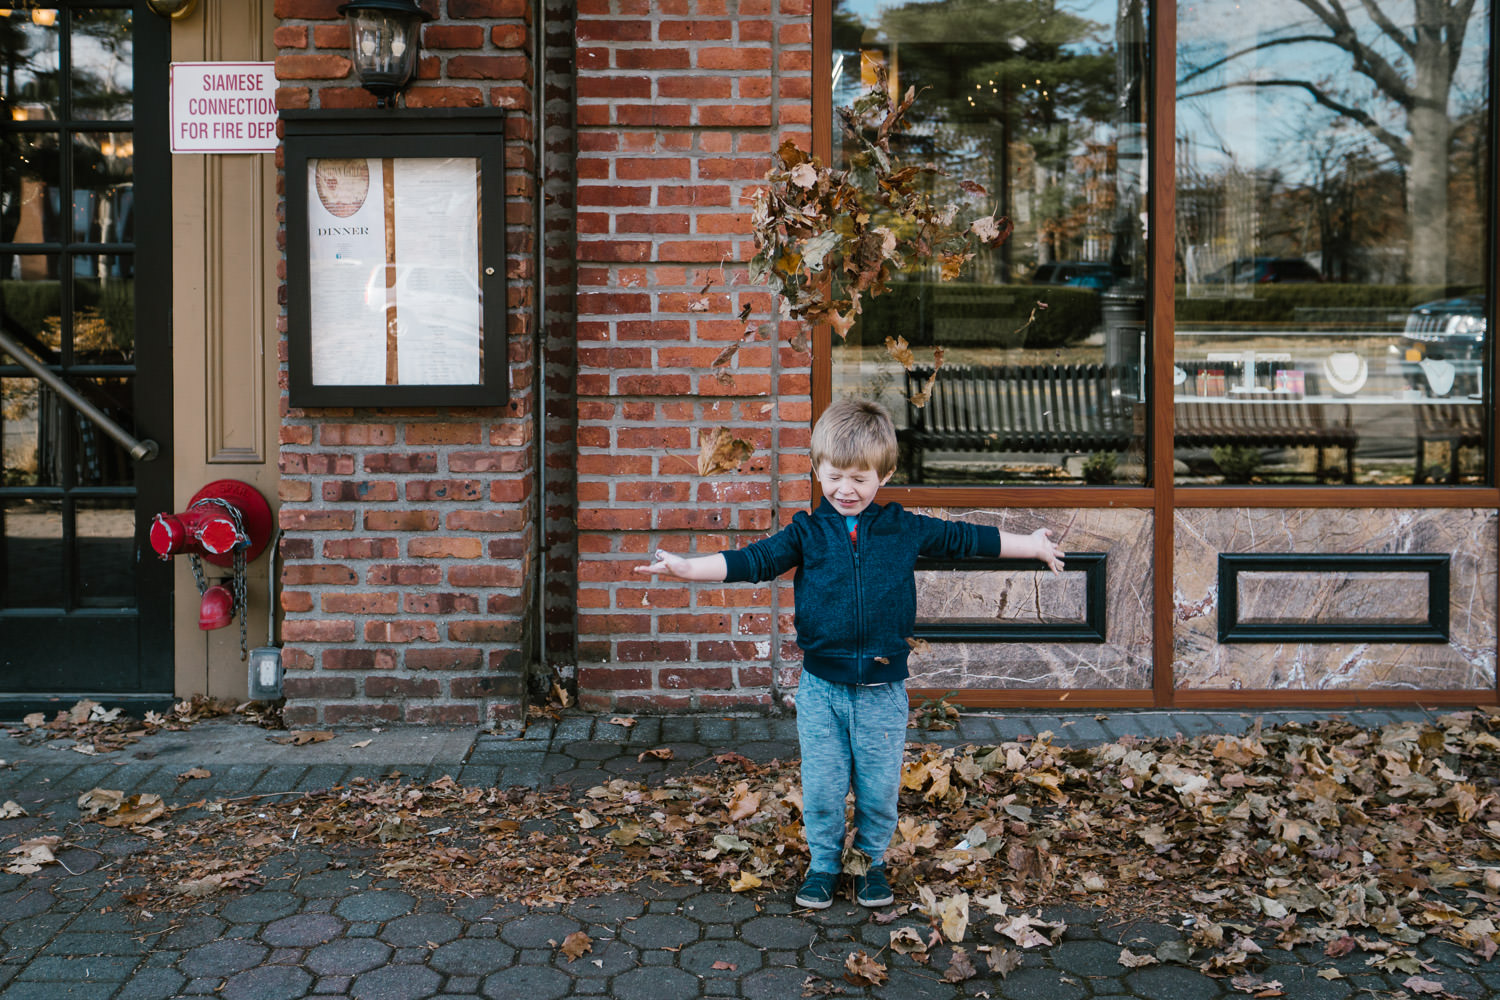 A little boy throws leaves above his head in front of a store on Franklin Ave.